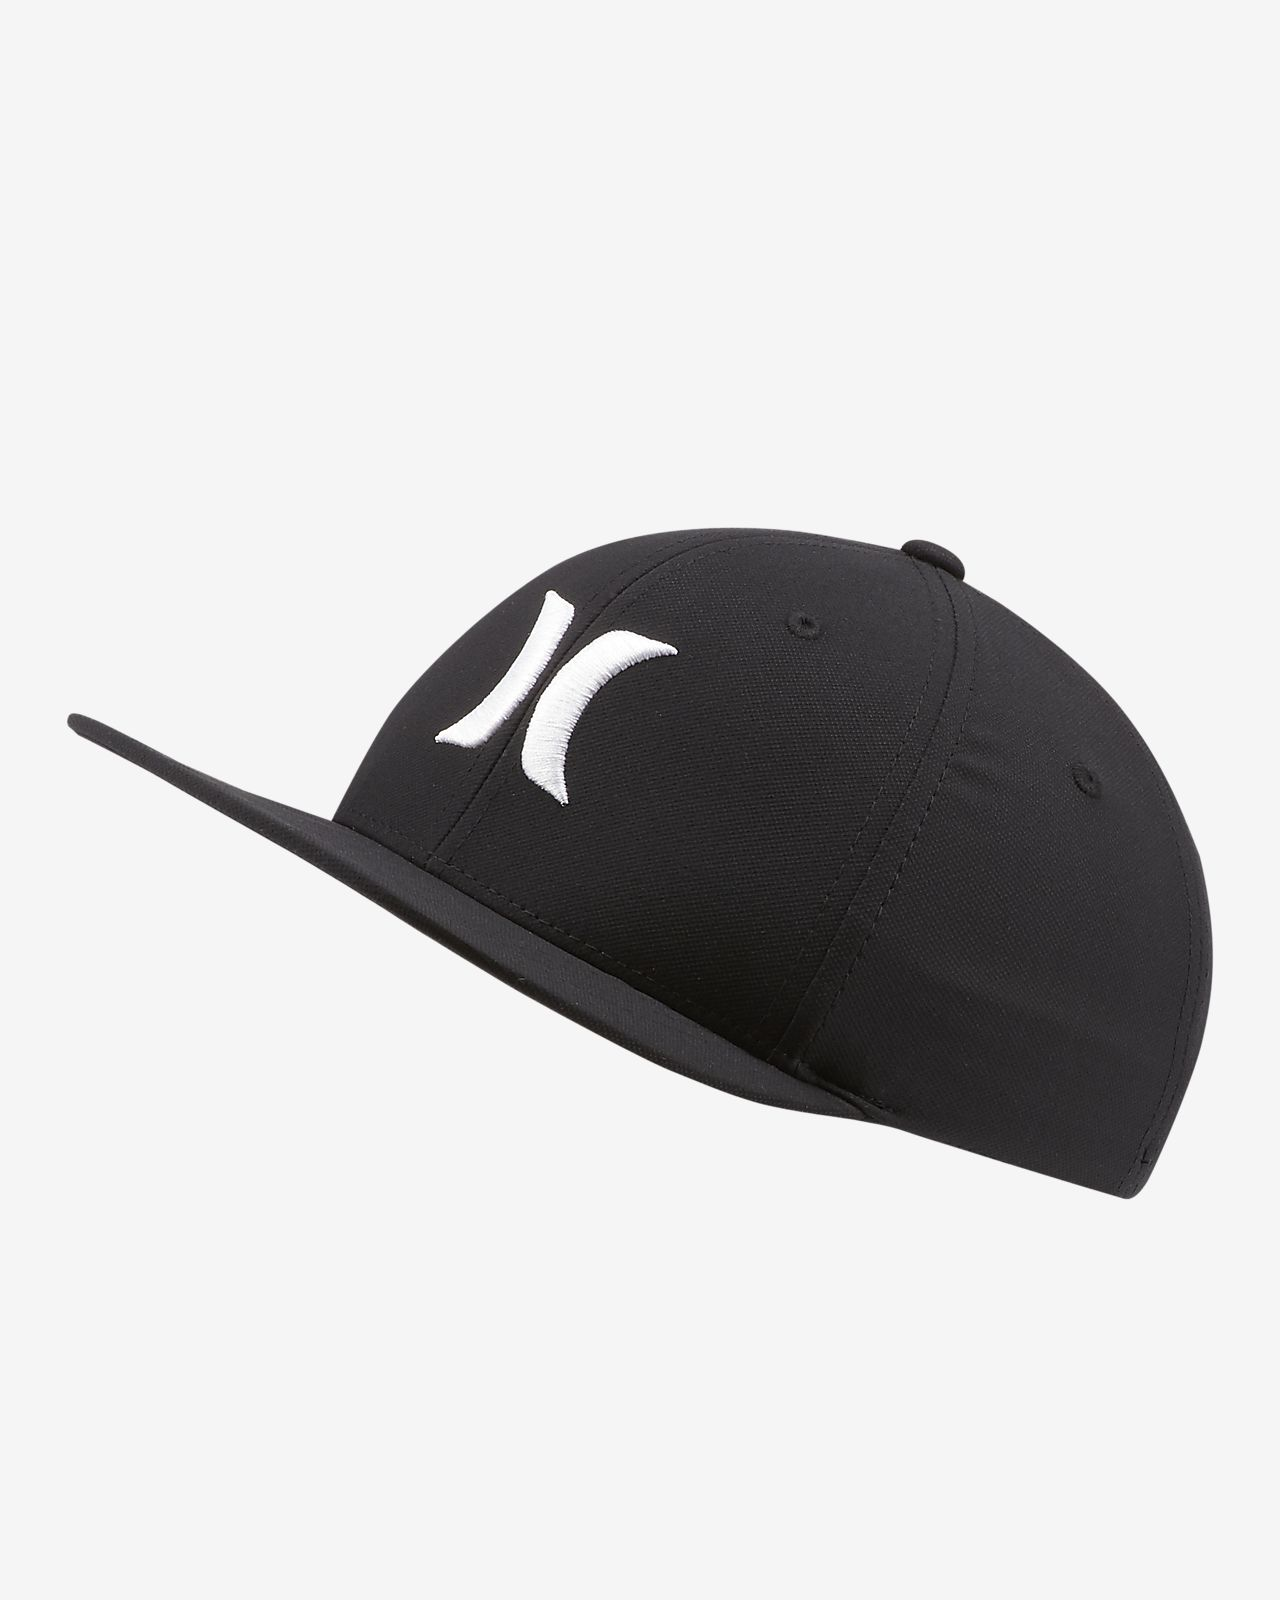 Hurley Dri-FIT One And Only Boys  Hat. Nike.com NZ 779b8f7da5f4